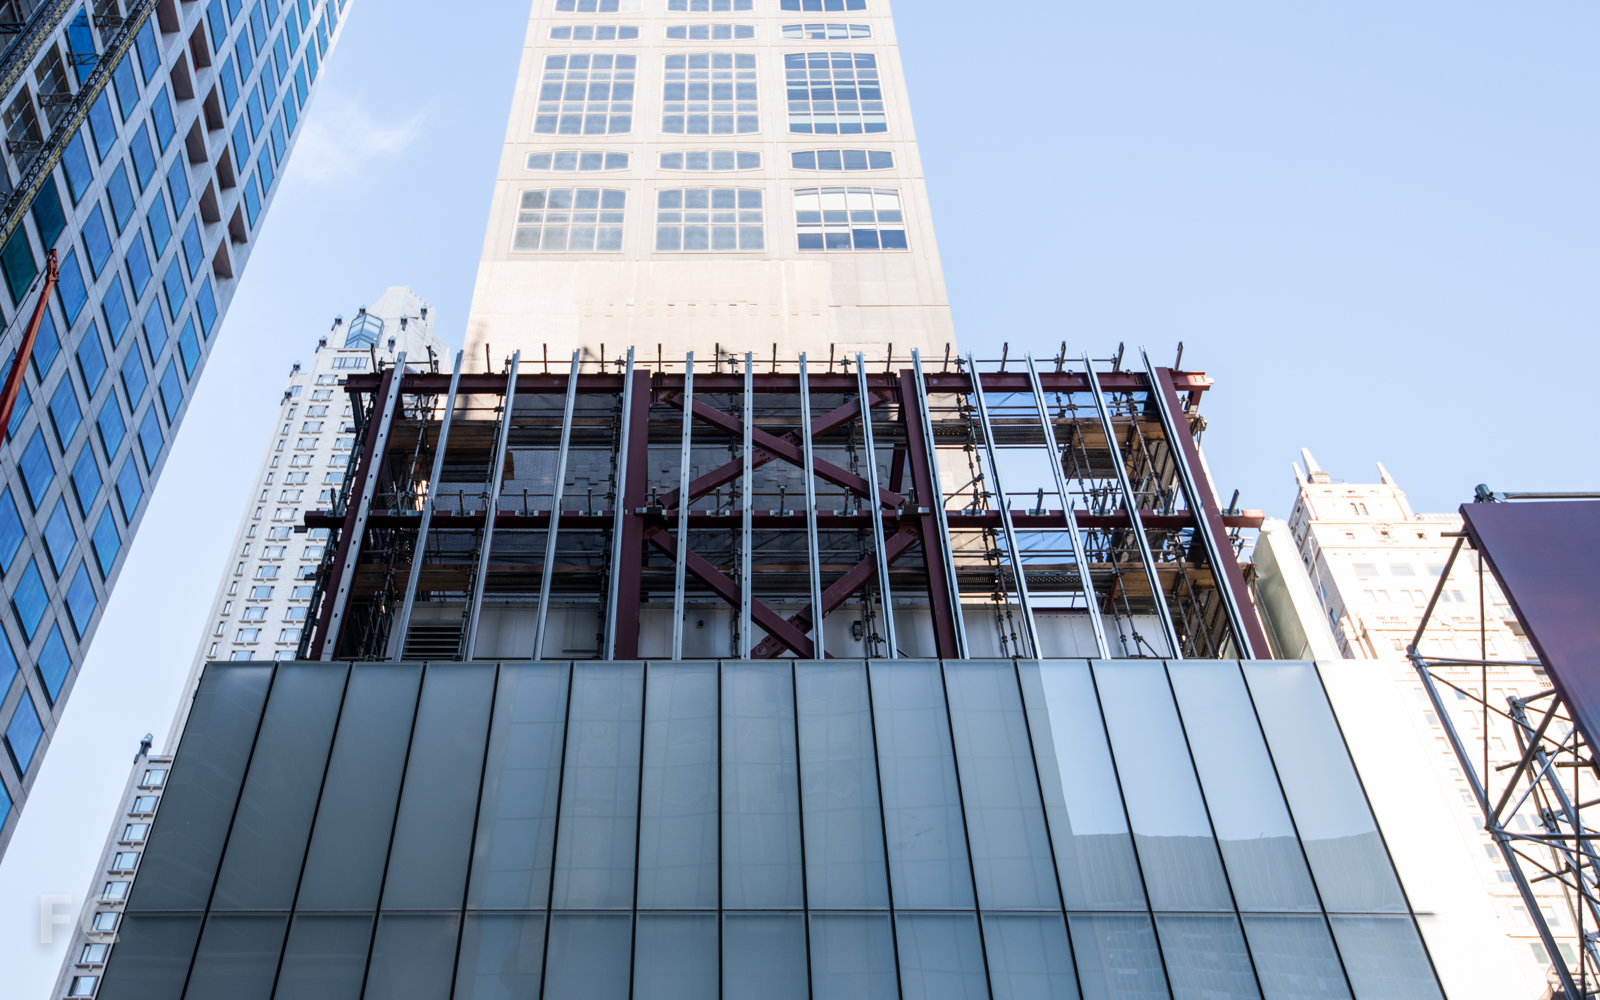 South facade of the retail pavilion from East 56th Street.